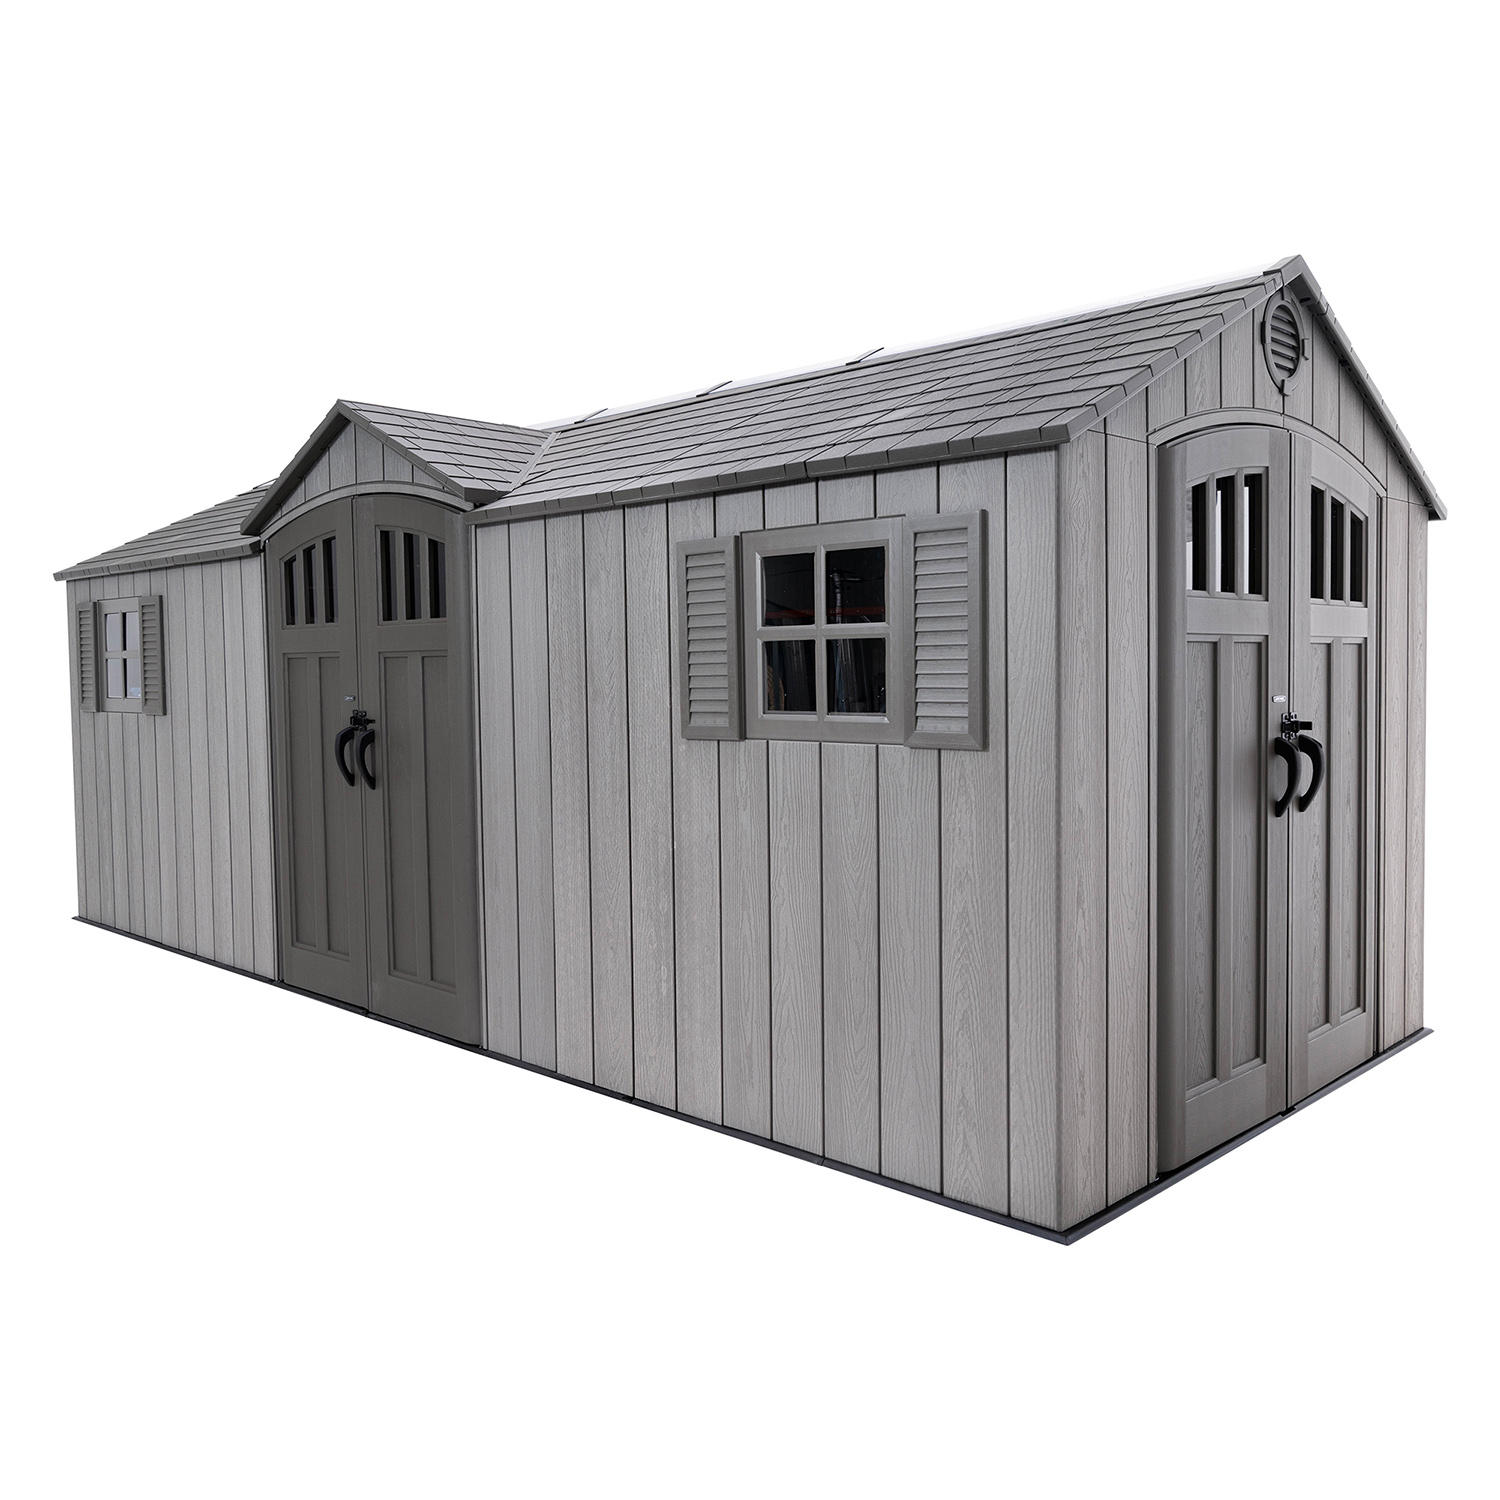 Lifetime (60351) 20′ x 8′ Outdoor Storage Shed with Adjustable Shelving System